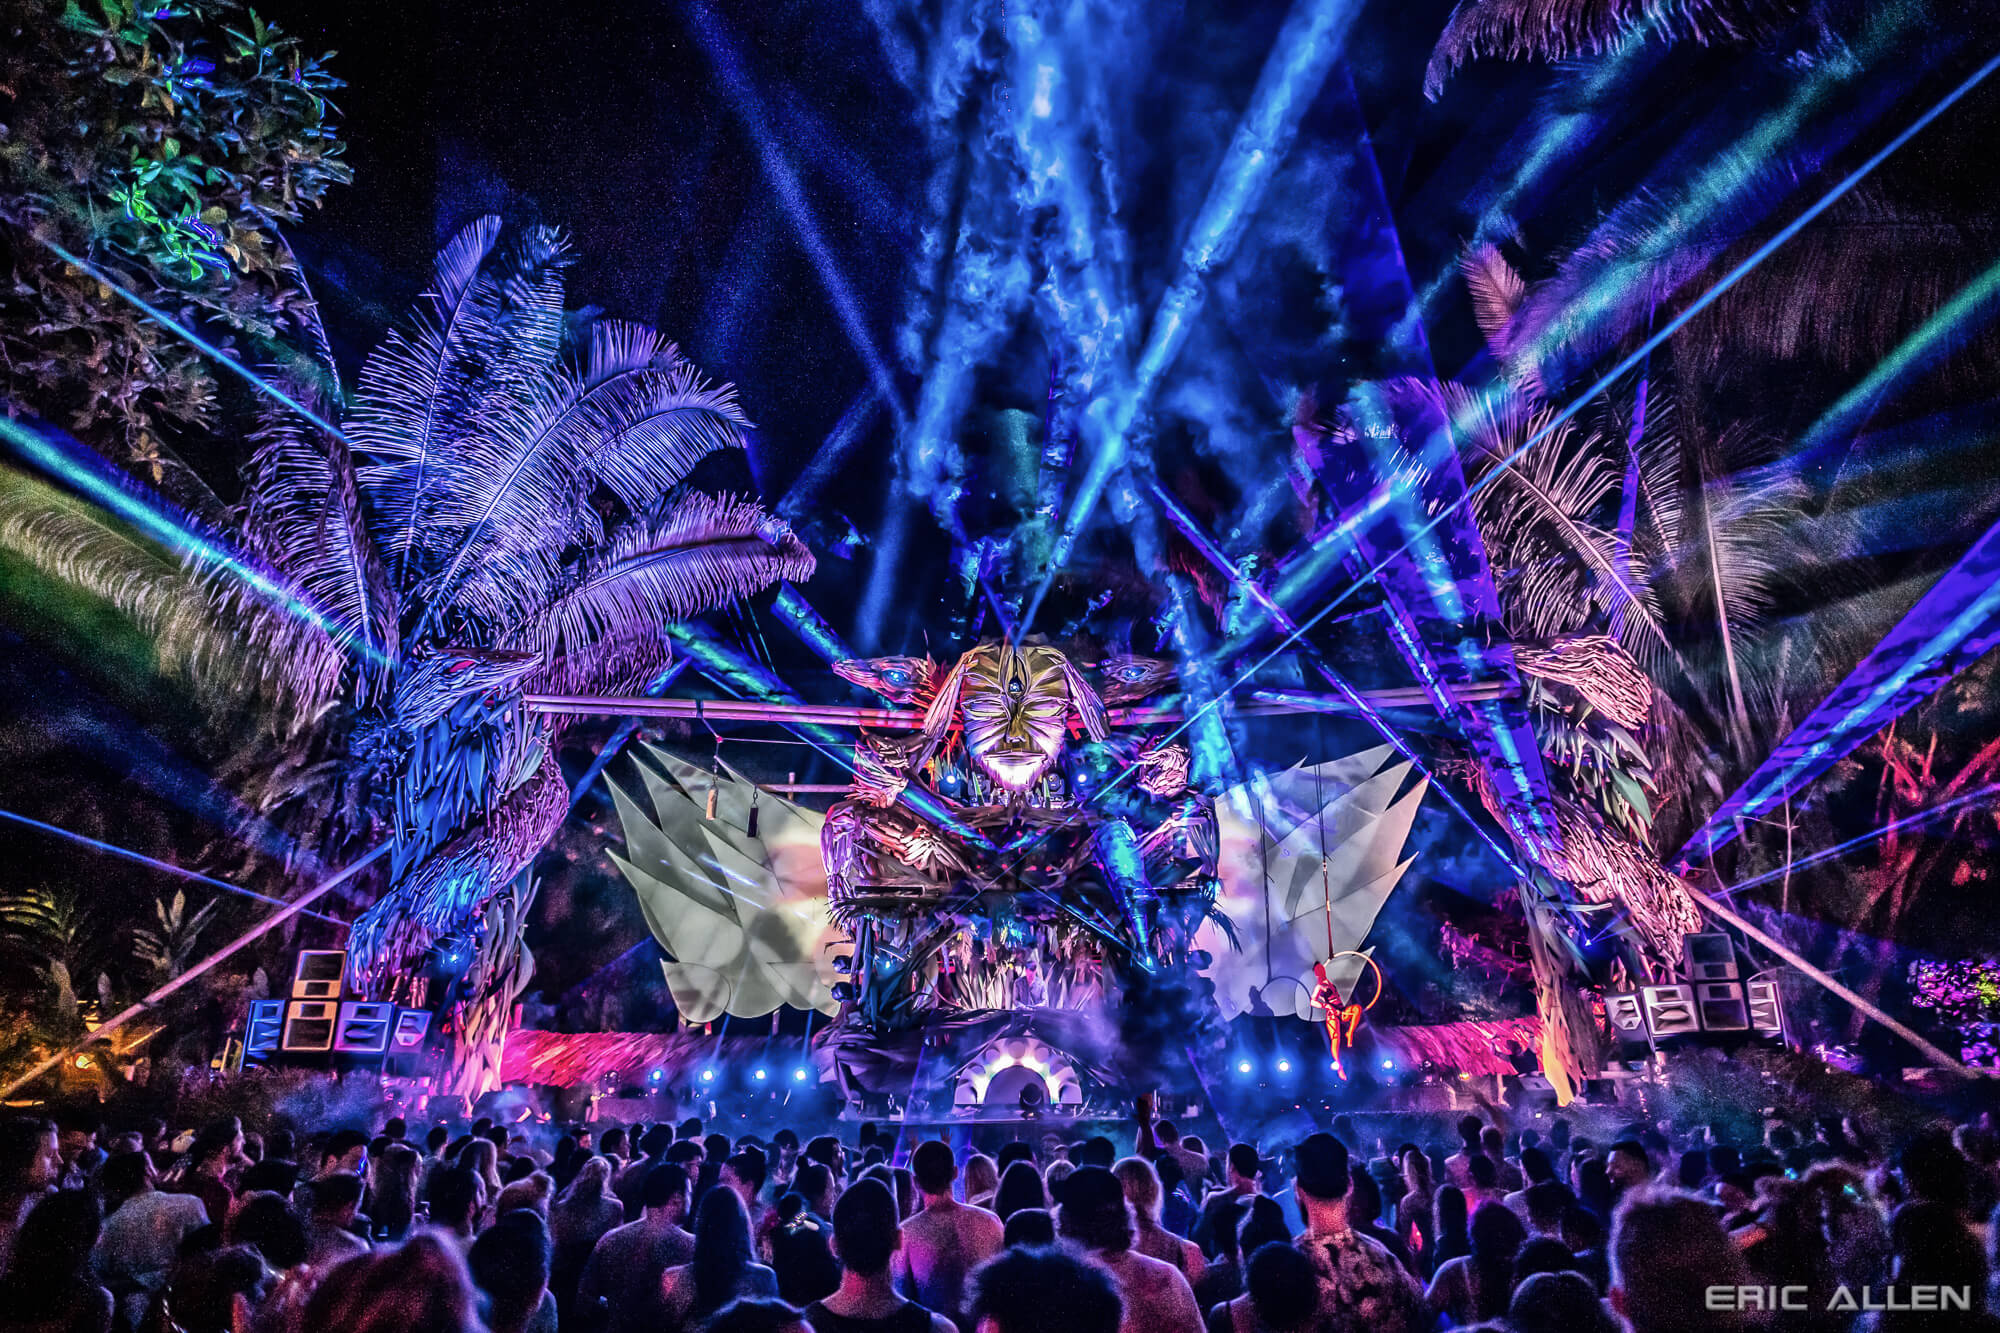 Copy of EF19 EricAllenPhoto AAASelects 42 1 - Envision Festival Unveils First Four Artists Headlining its 10th Anniversary